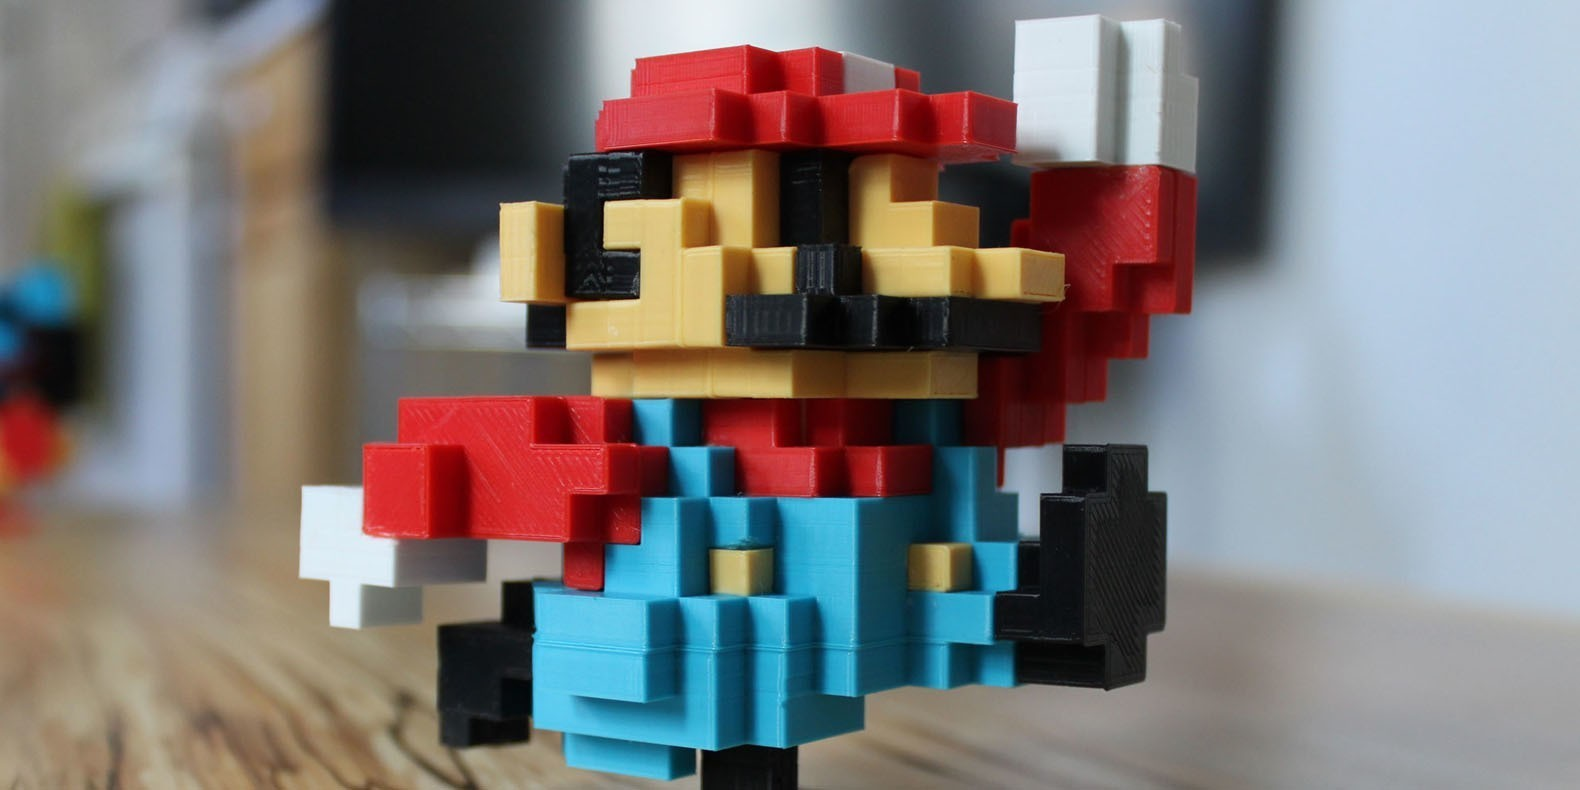 Best Stl Files For 3d Printer Of Mario Cults